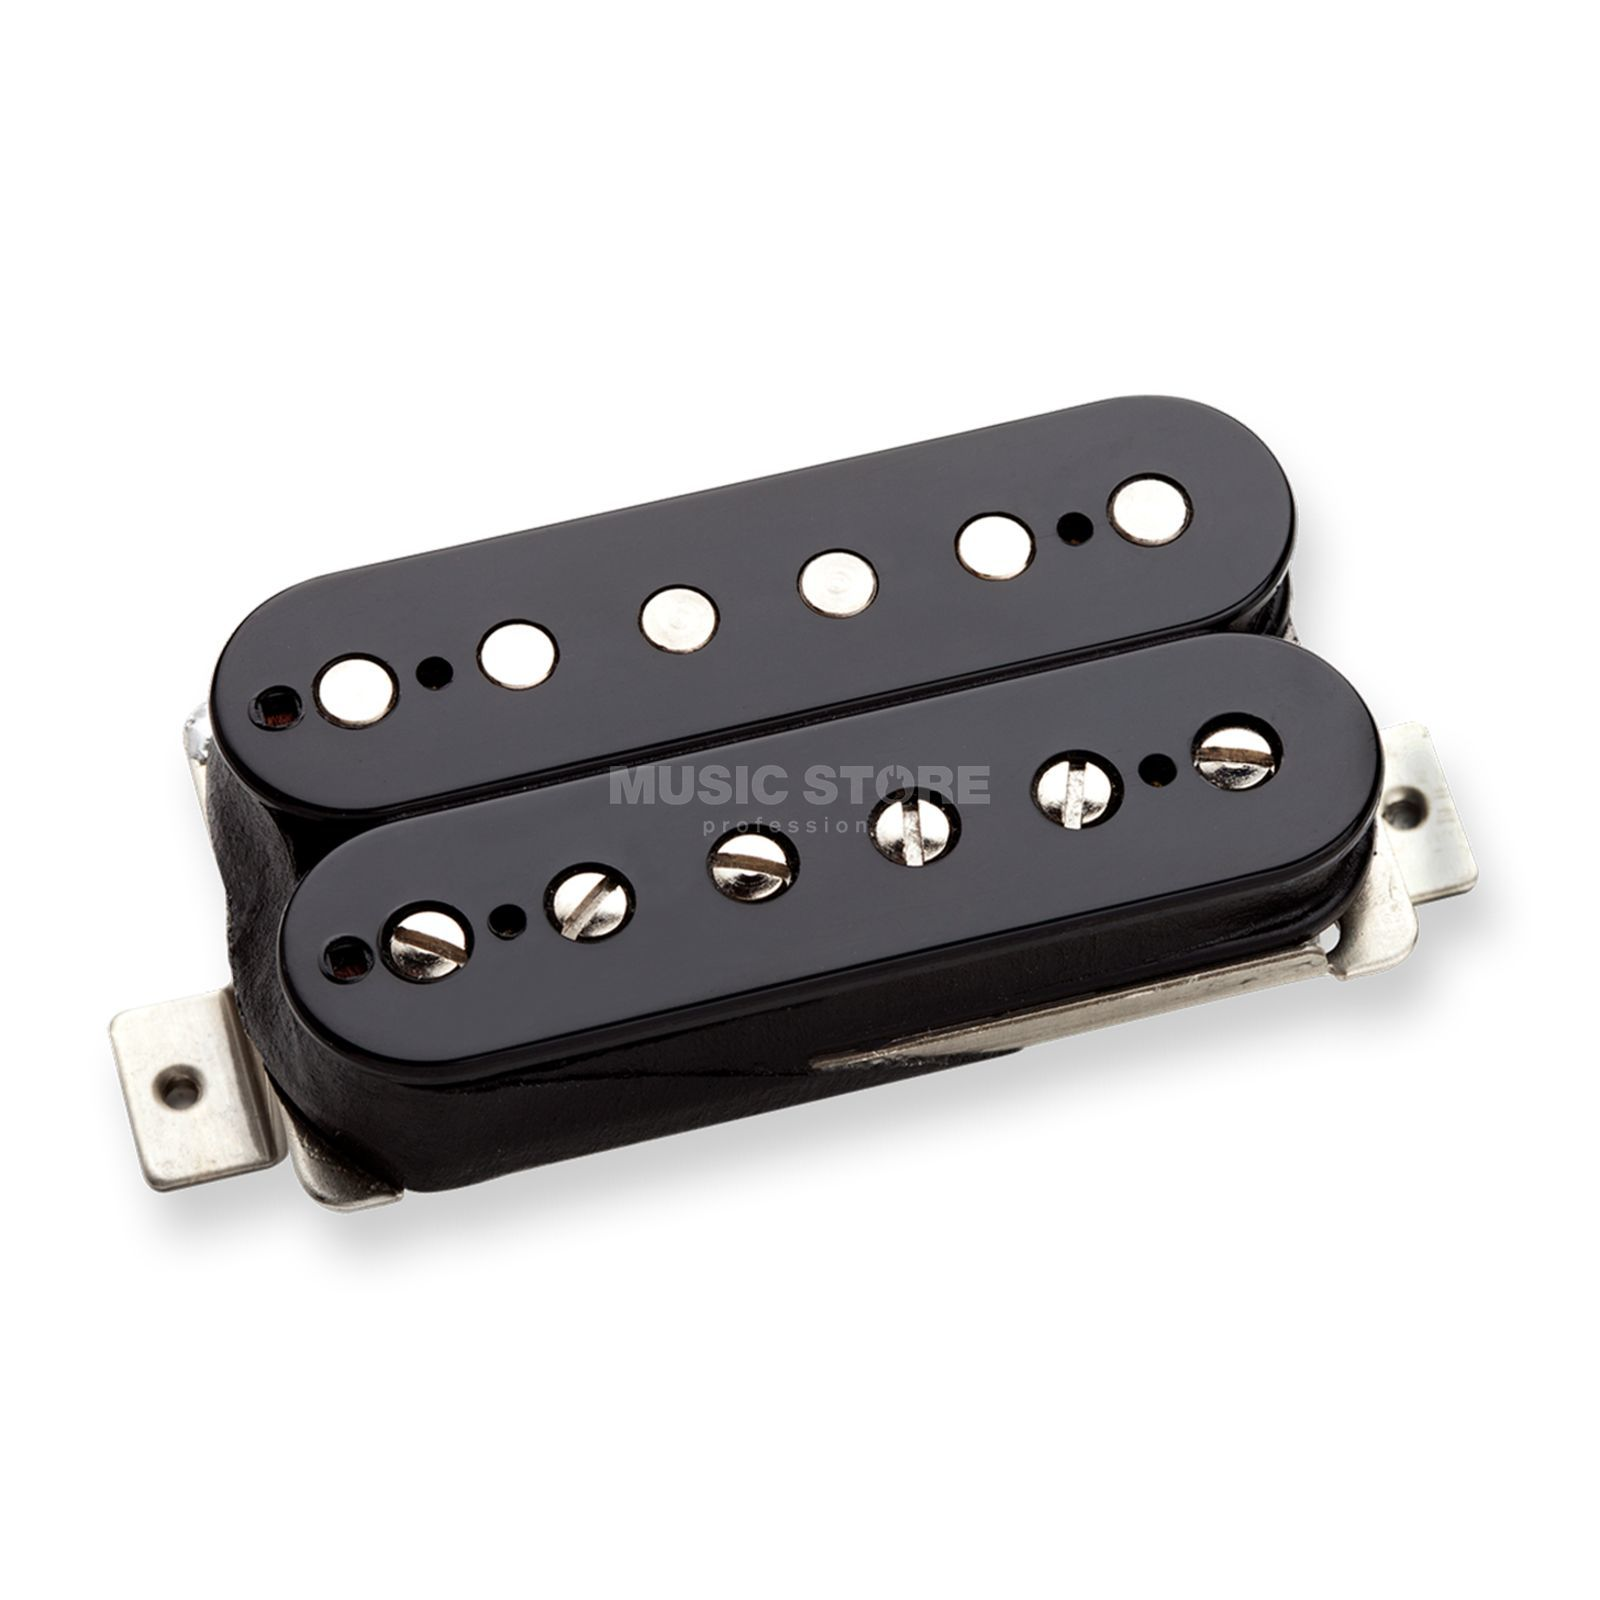 Seymour Duncan TB-59B BLK '59 Model Trembucker Black Bridge Produktbild